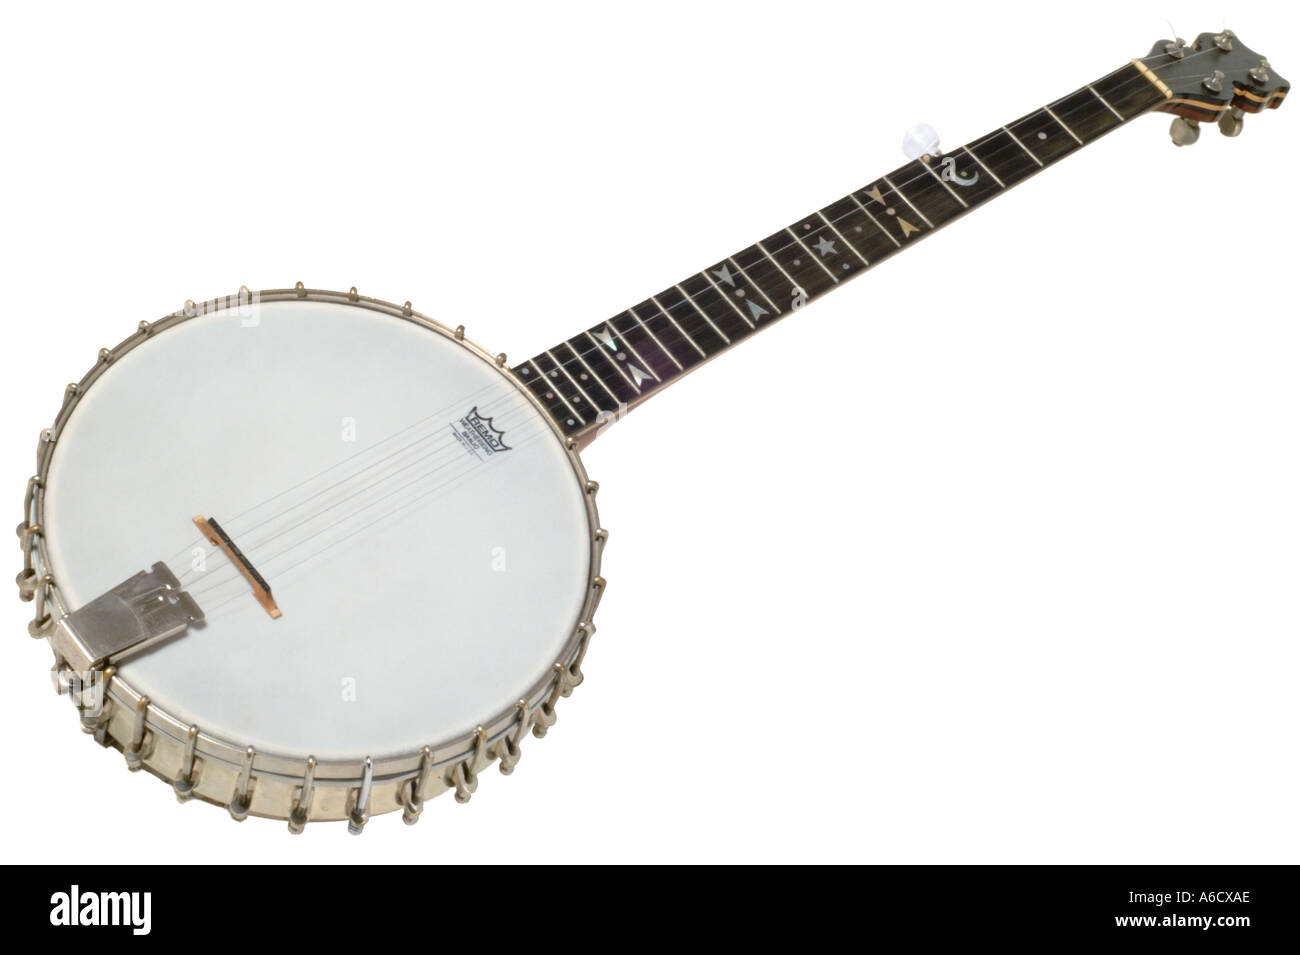 J parslow kingston banjo 5 string  studio cutout cut out white background knockout dropout - Stock Image